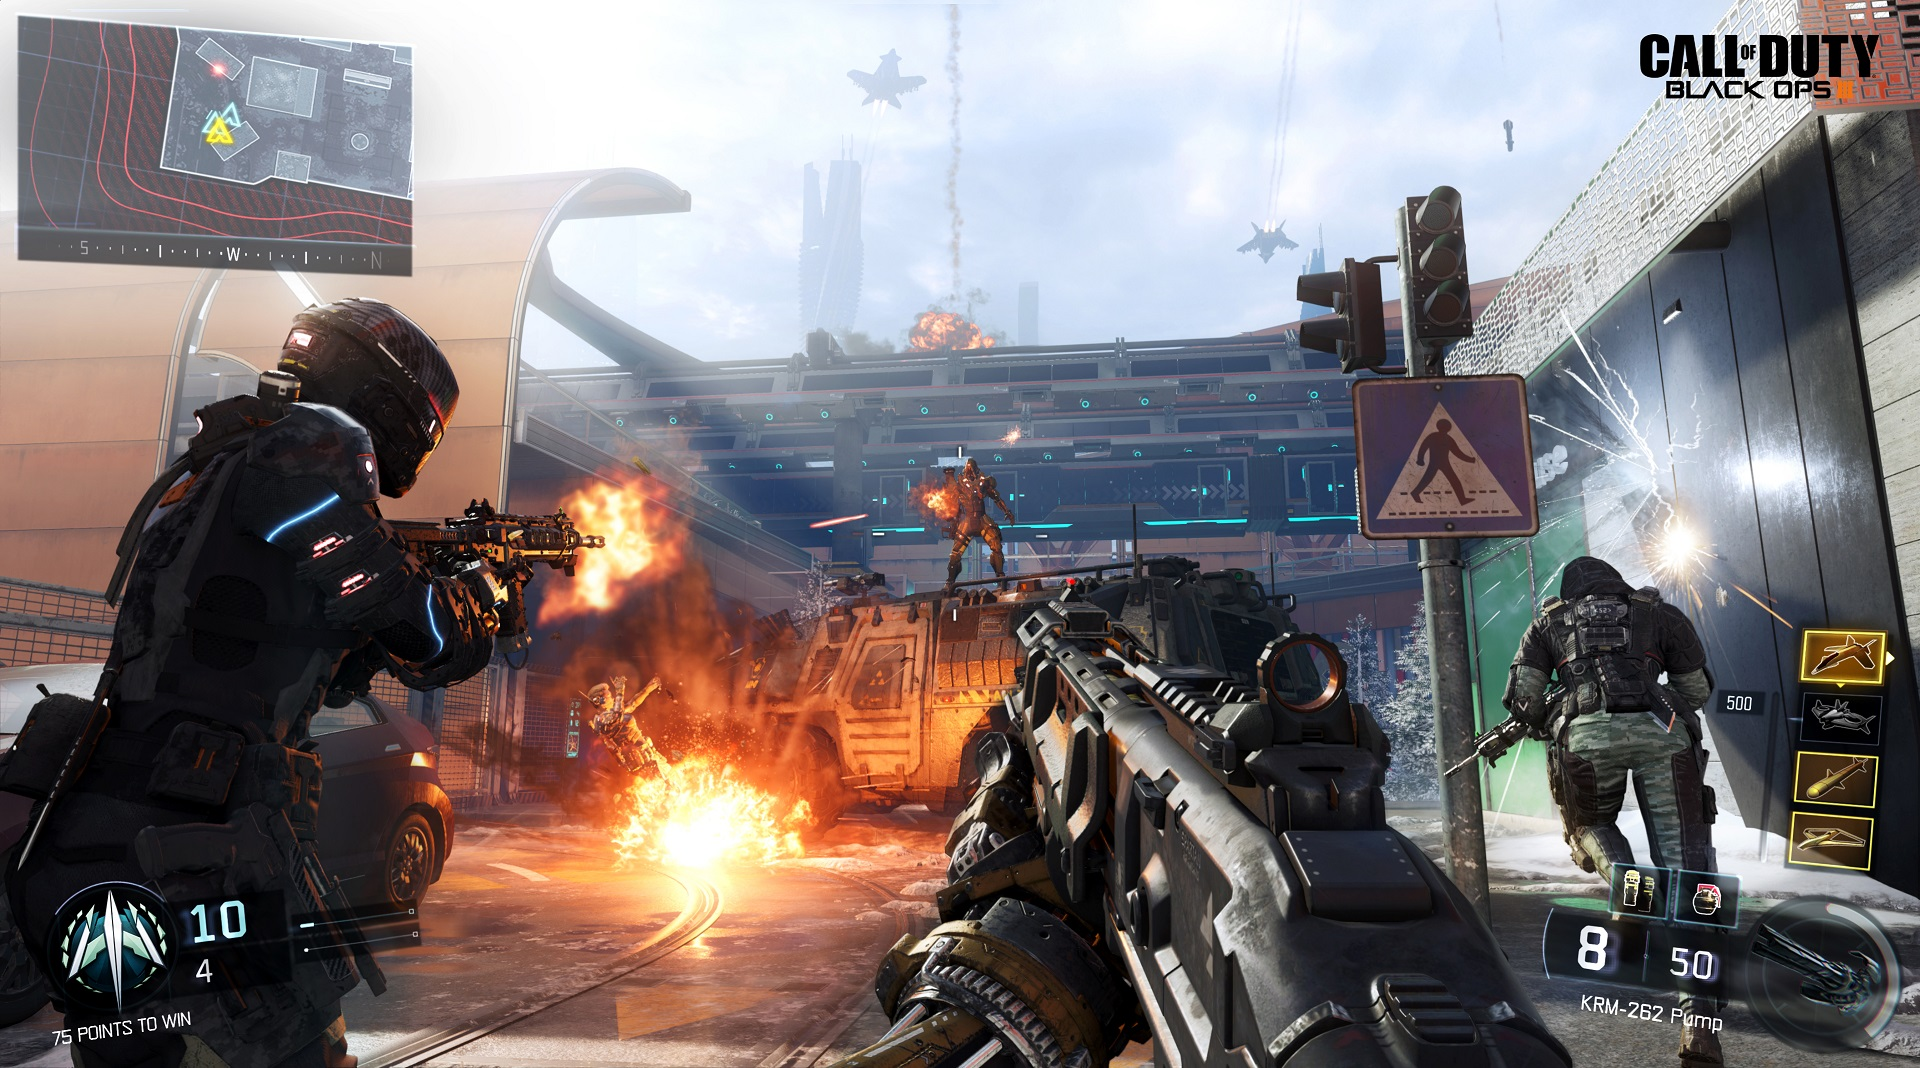 First Look At Gold Camo In Call Of Duty: Black Ops 3